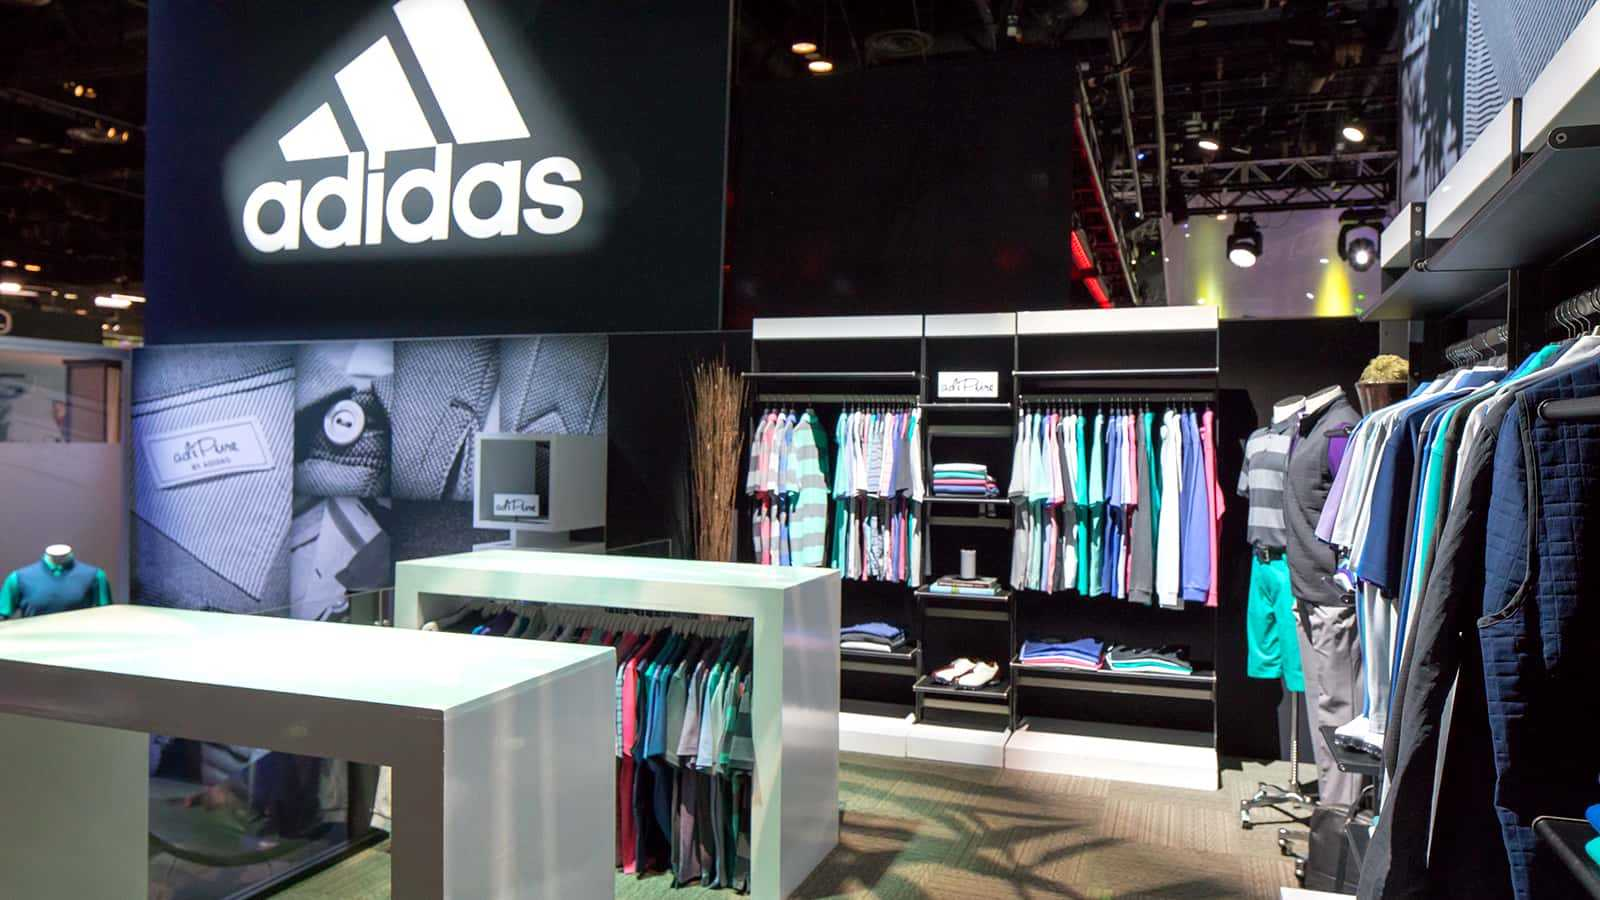 adiPure by adidas retail zone at the adidas Golf PGA Merchandise Show 2017 experience.